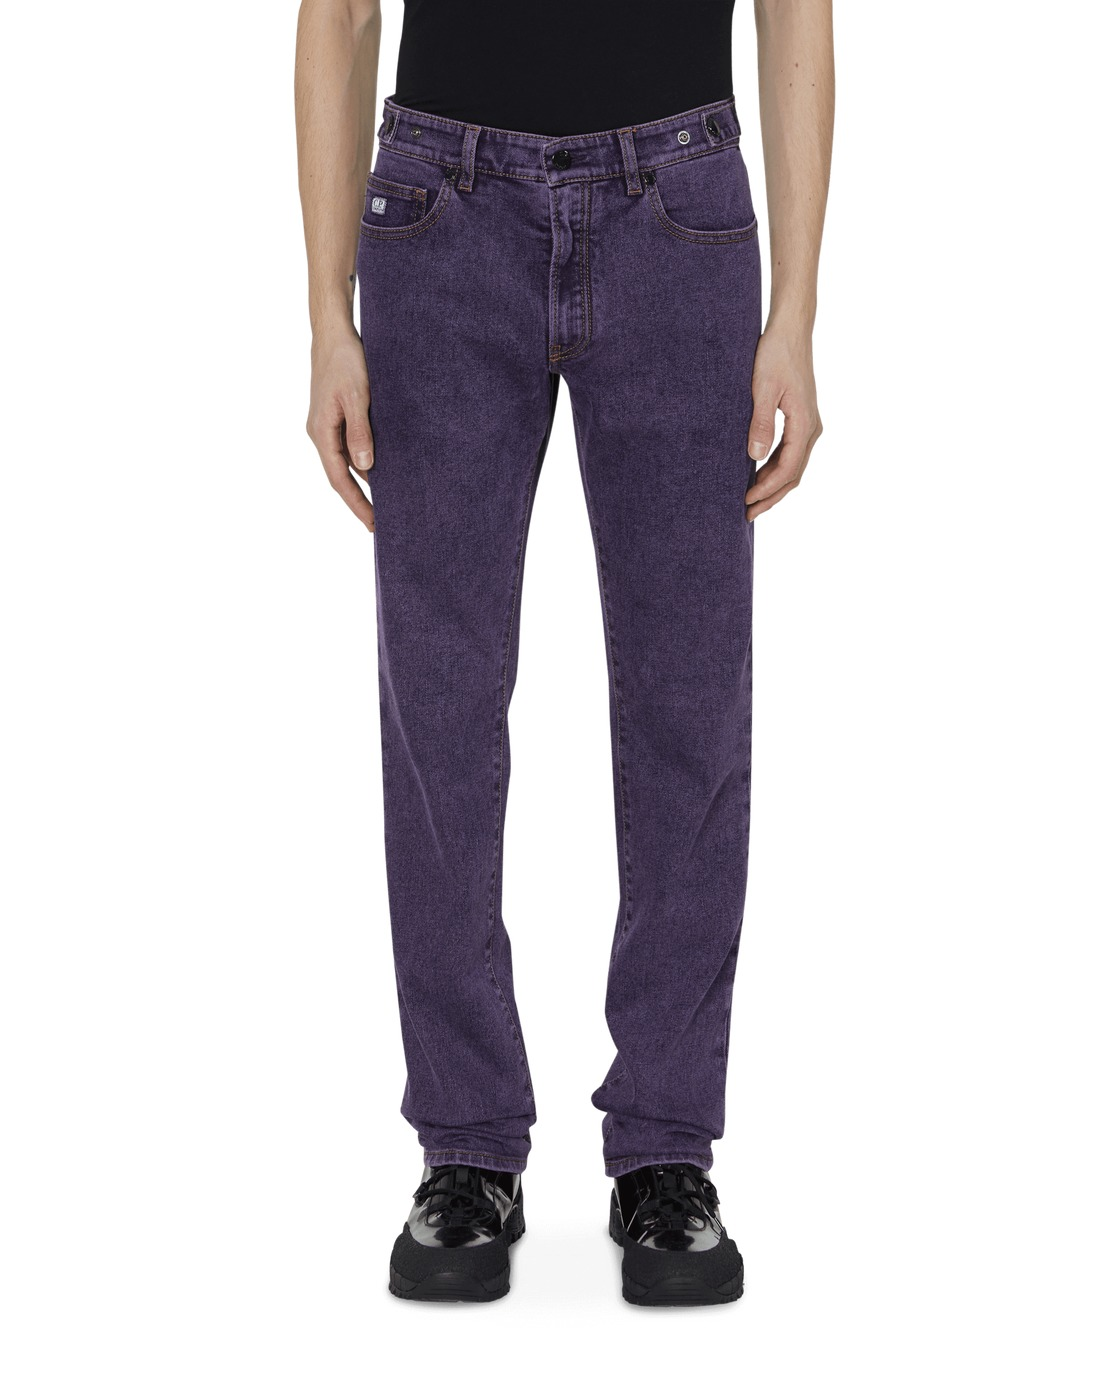 C.P. Company Denim Pants Striking Purple